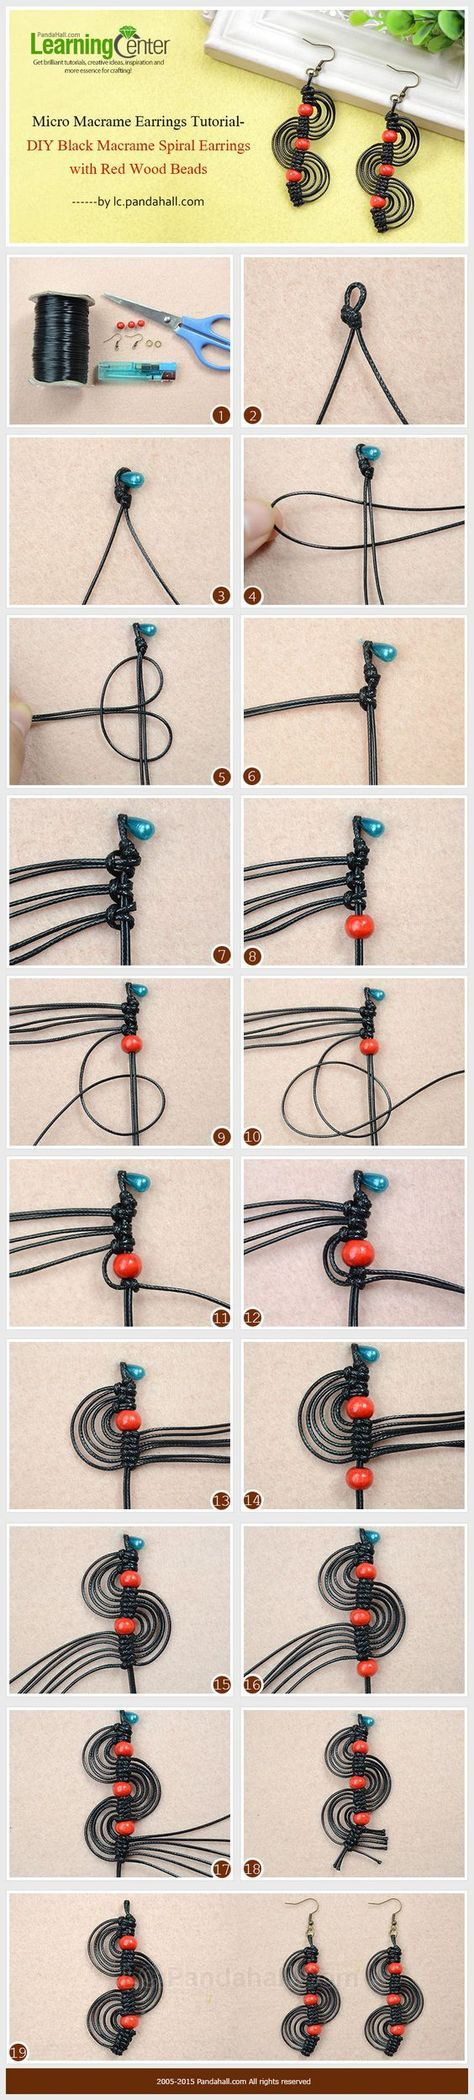 526 Best Joyeria Con Macrame Images On Pinterest Braid Bricolage Electrical Single Line Diagrampart One Knowhow Bracelet Macram